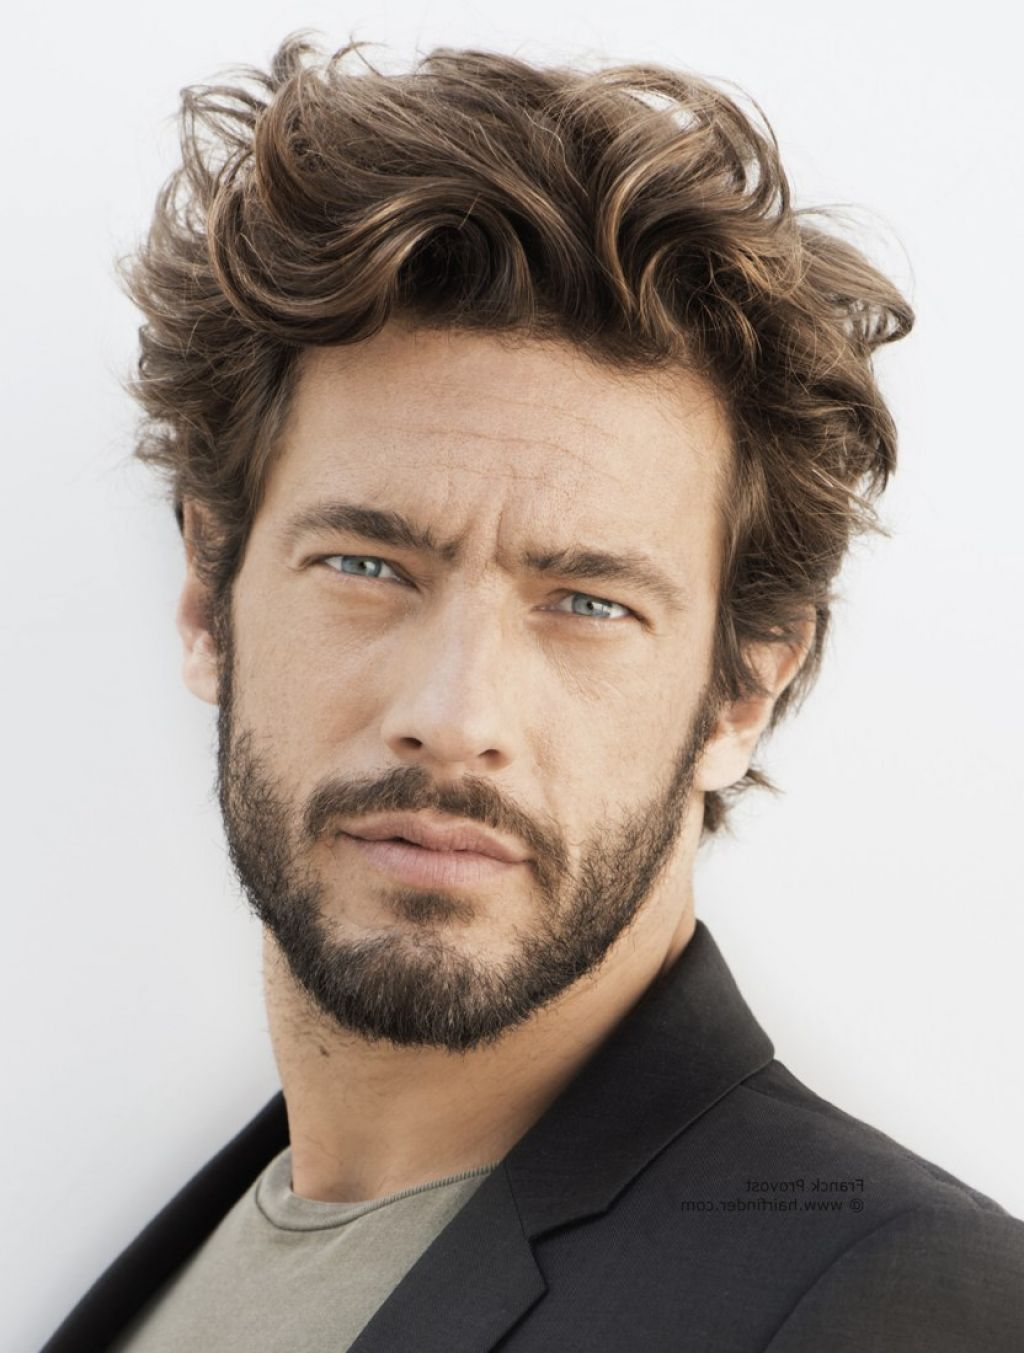 Beard Styles For Men With Curly Hair Wavy Hair Men Mens Hairstyles Thick Hair Curly Hair Men